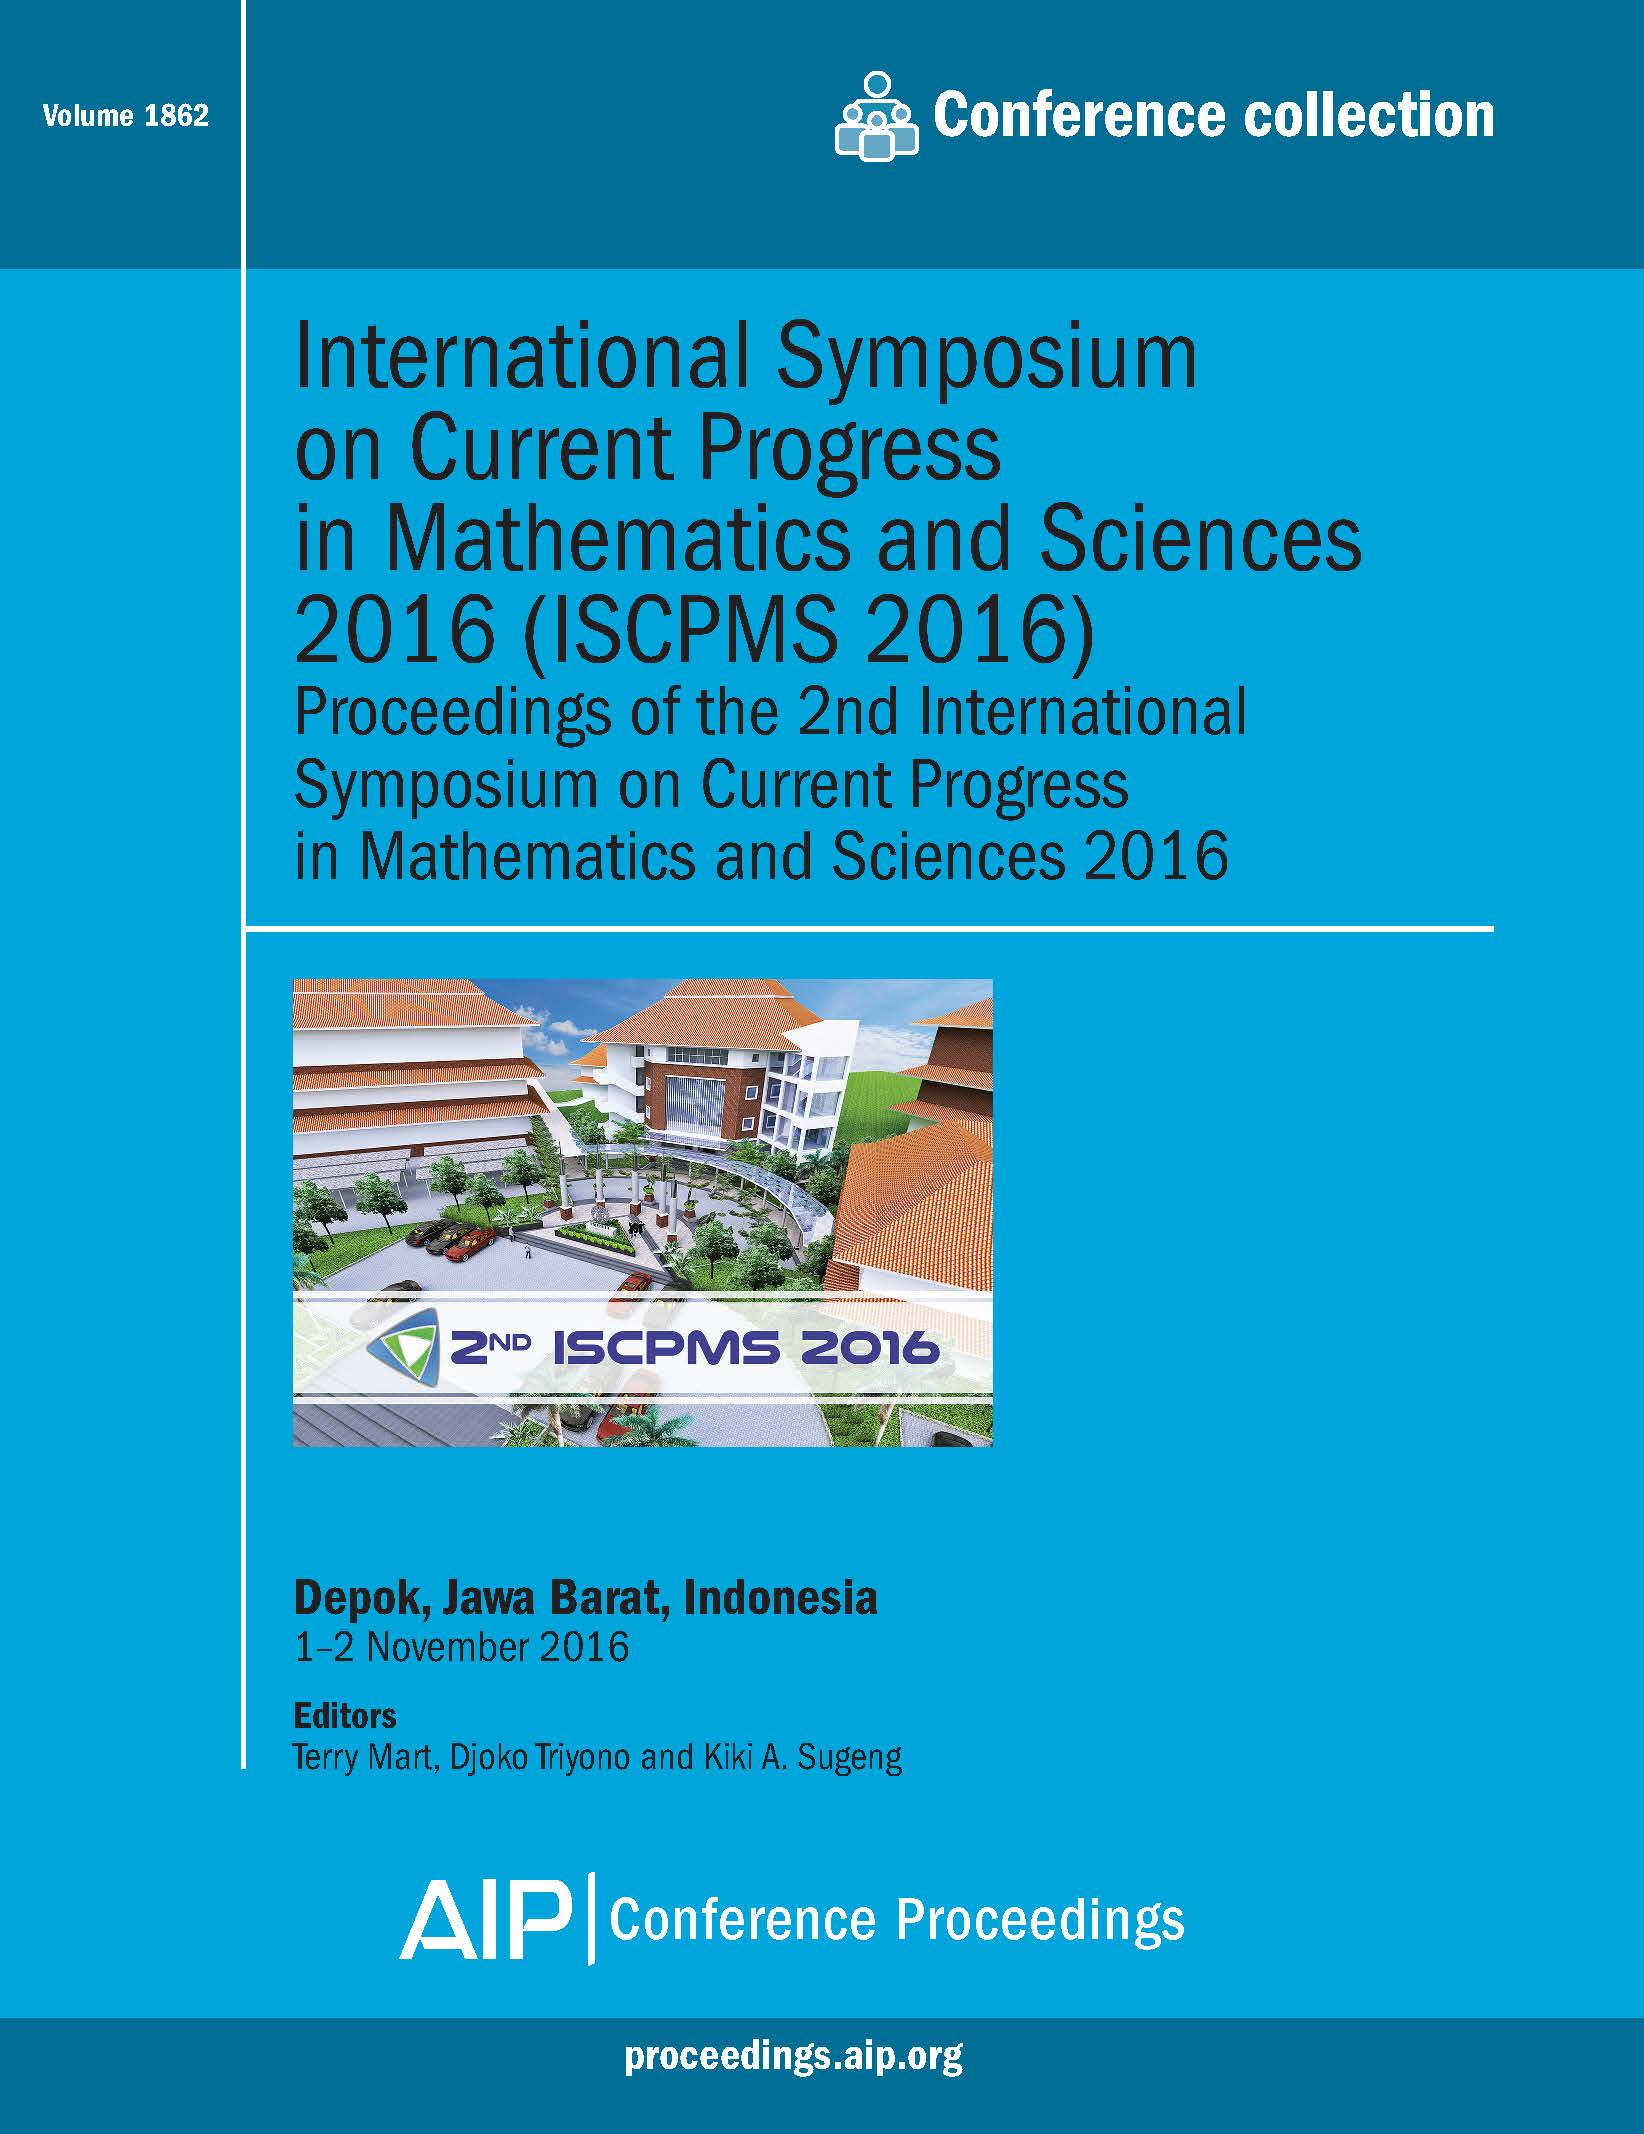 Volume 1862: International Symposium on Current Progress in